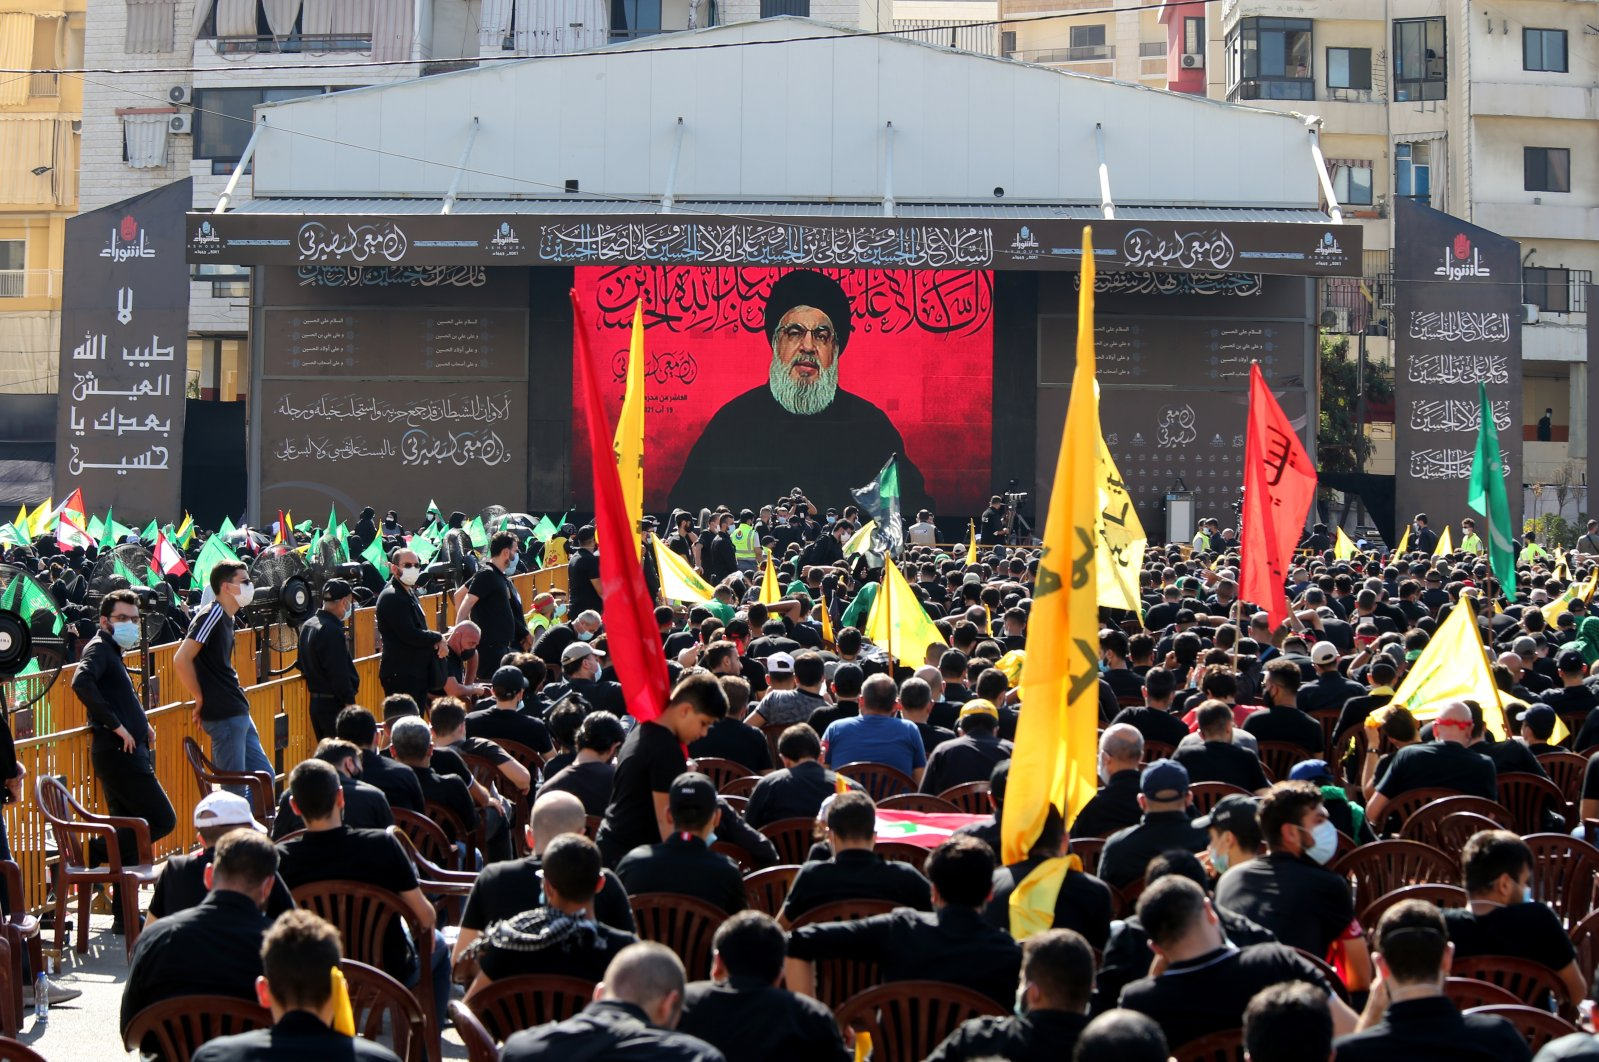 Supporters listen to the speech of Hezbollah leader Hassan Nasrallah during an Ashura Day procession in a southern suburb of Beirut, Lebanon, 19 Aug. 2021. (EPA/NABIL MOUNZER)